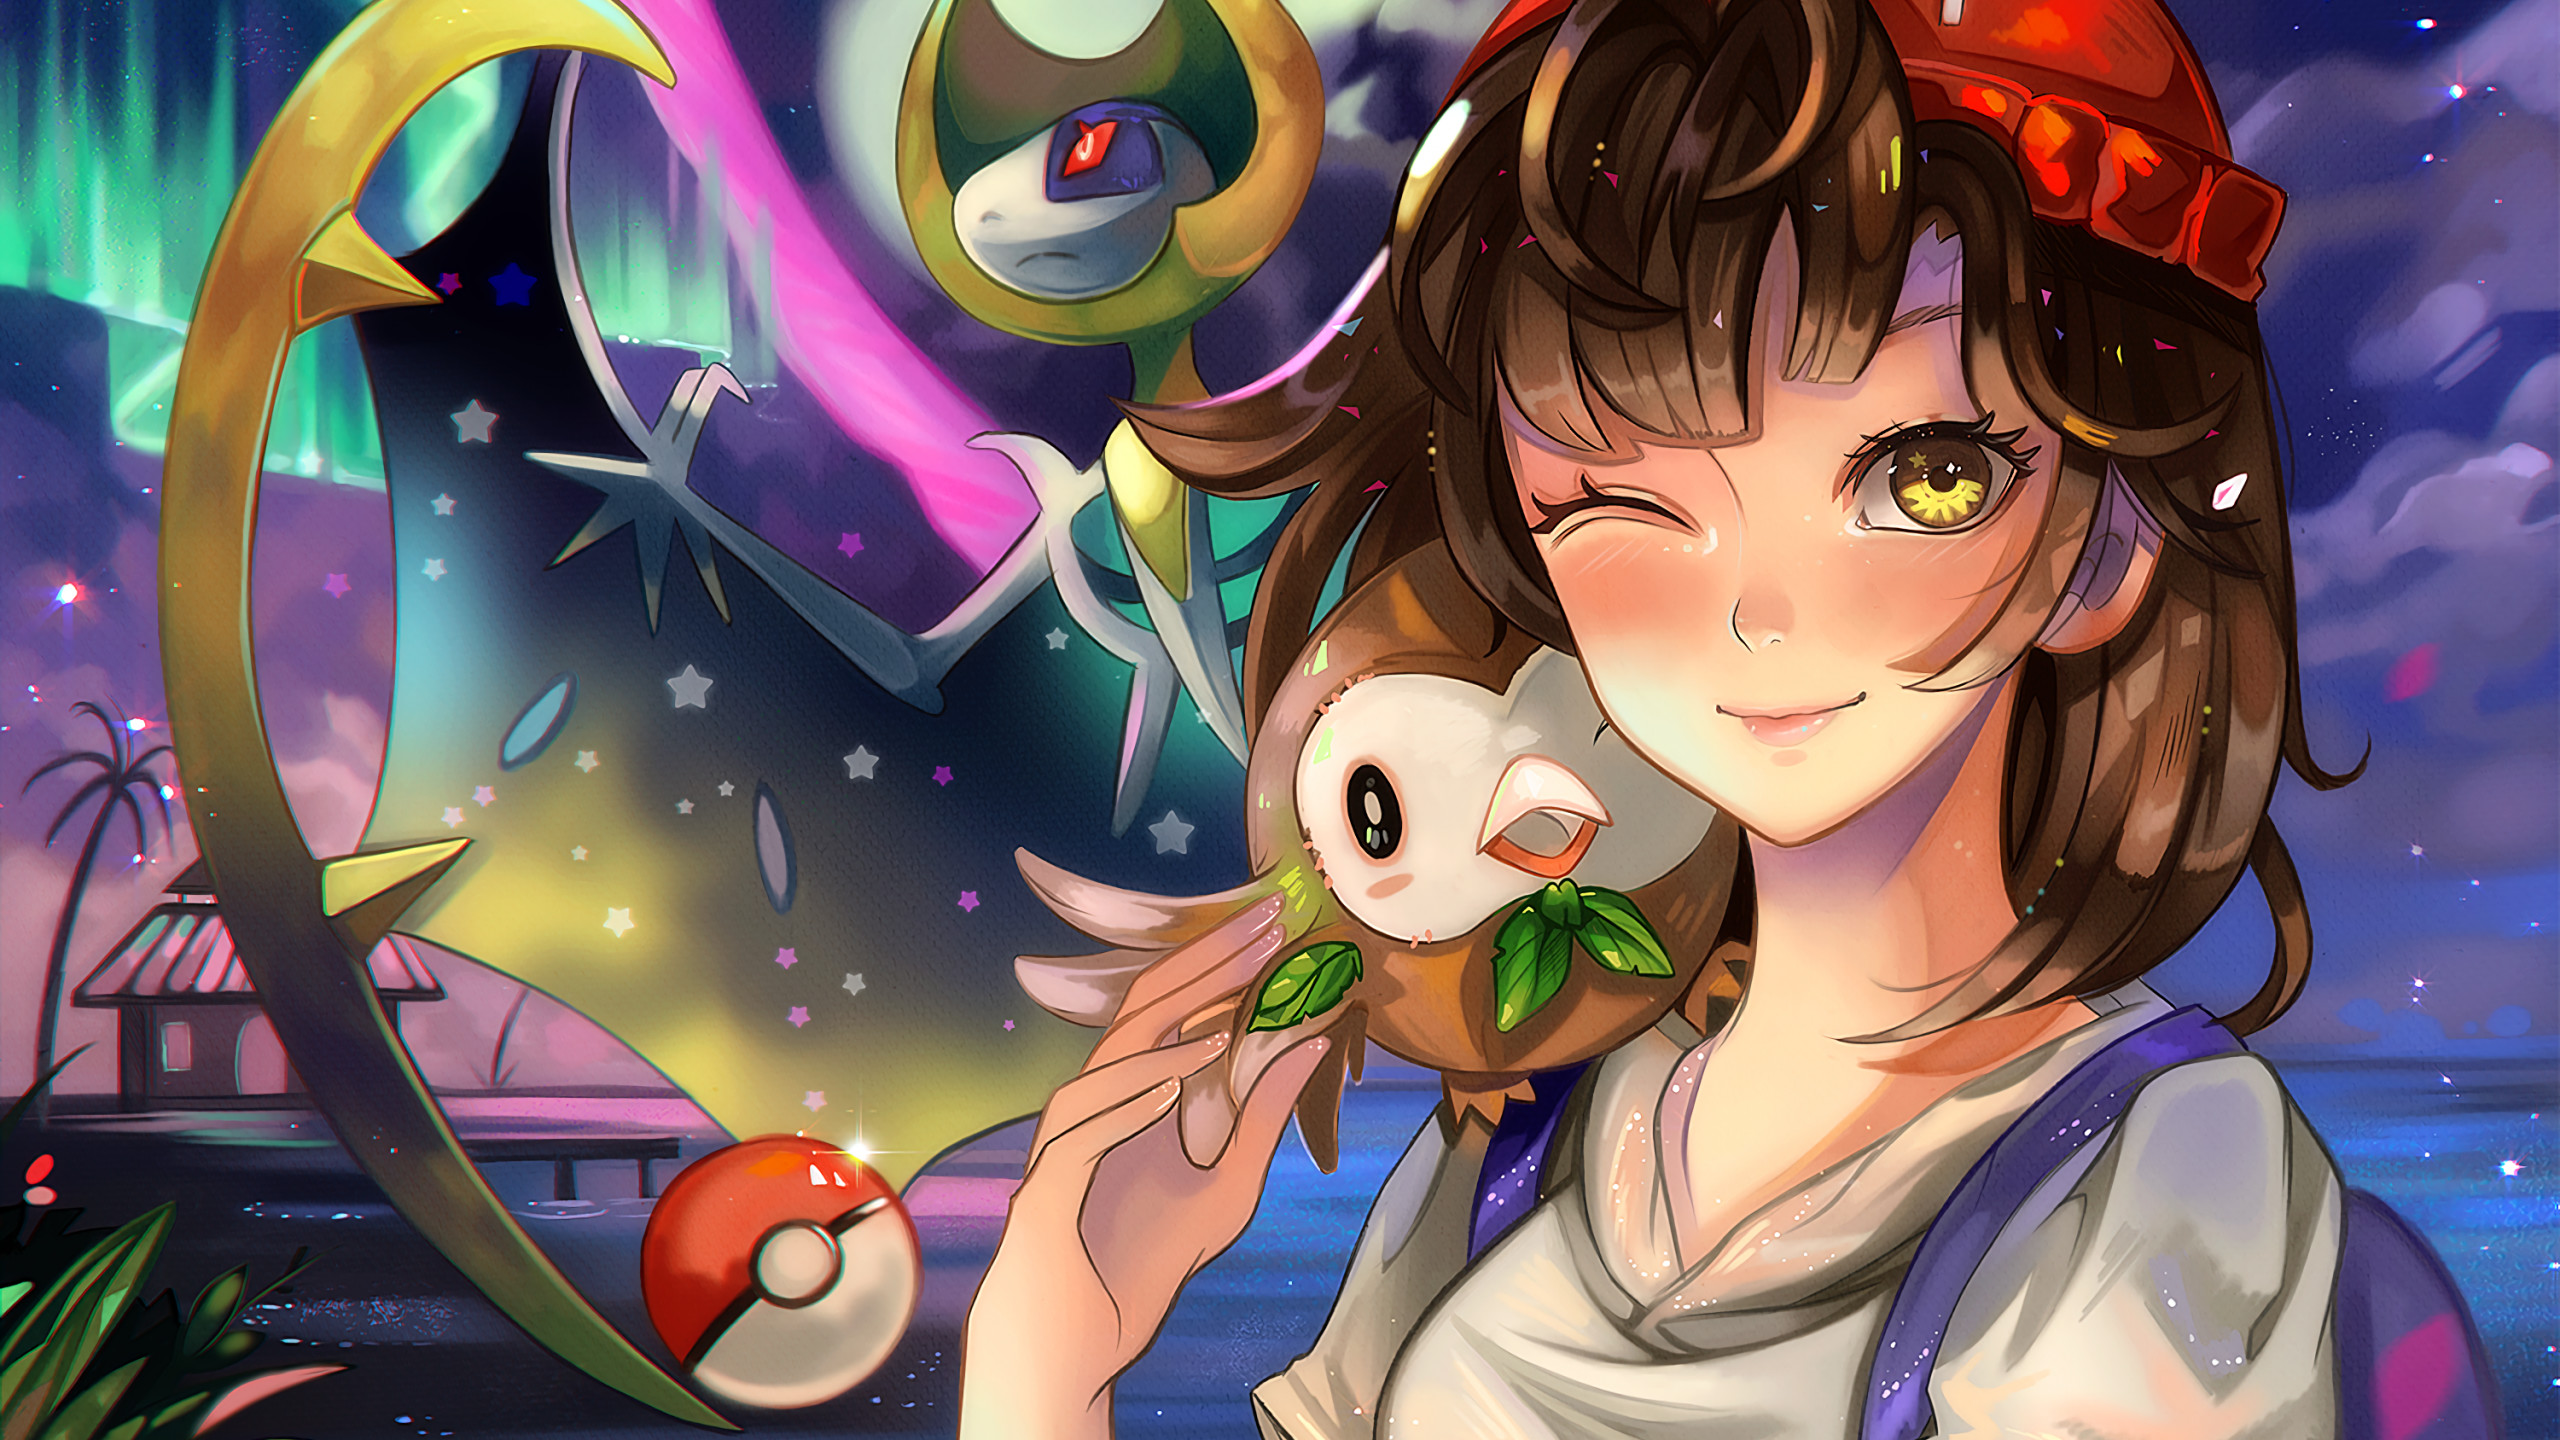 2560x1440 Pokemon Sun And Moon, Lunala, Rowlet, Wink, Anime Girl